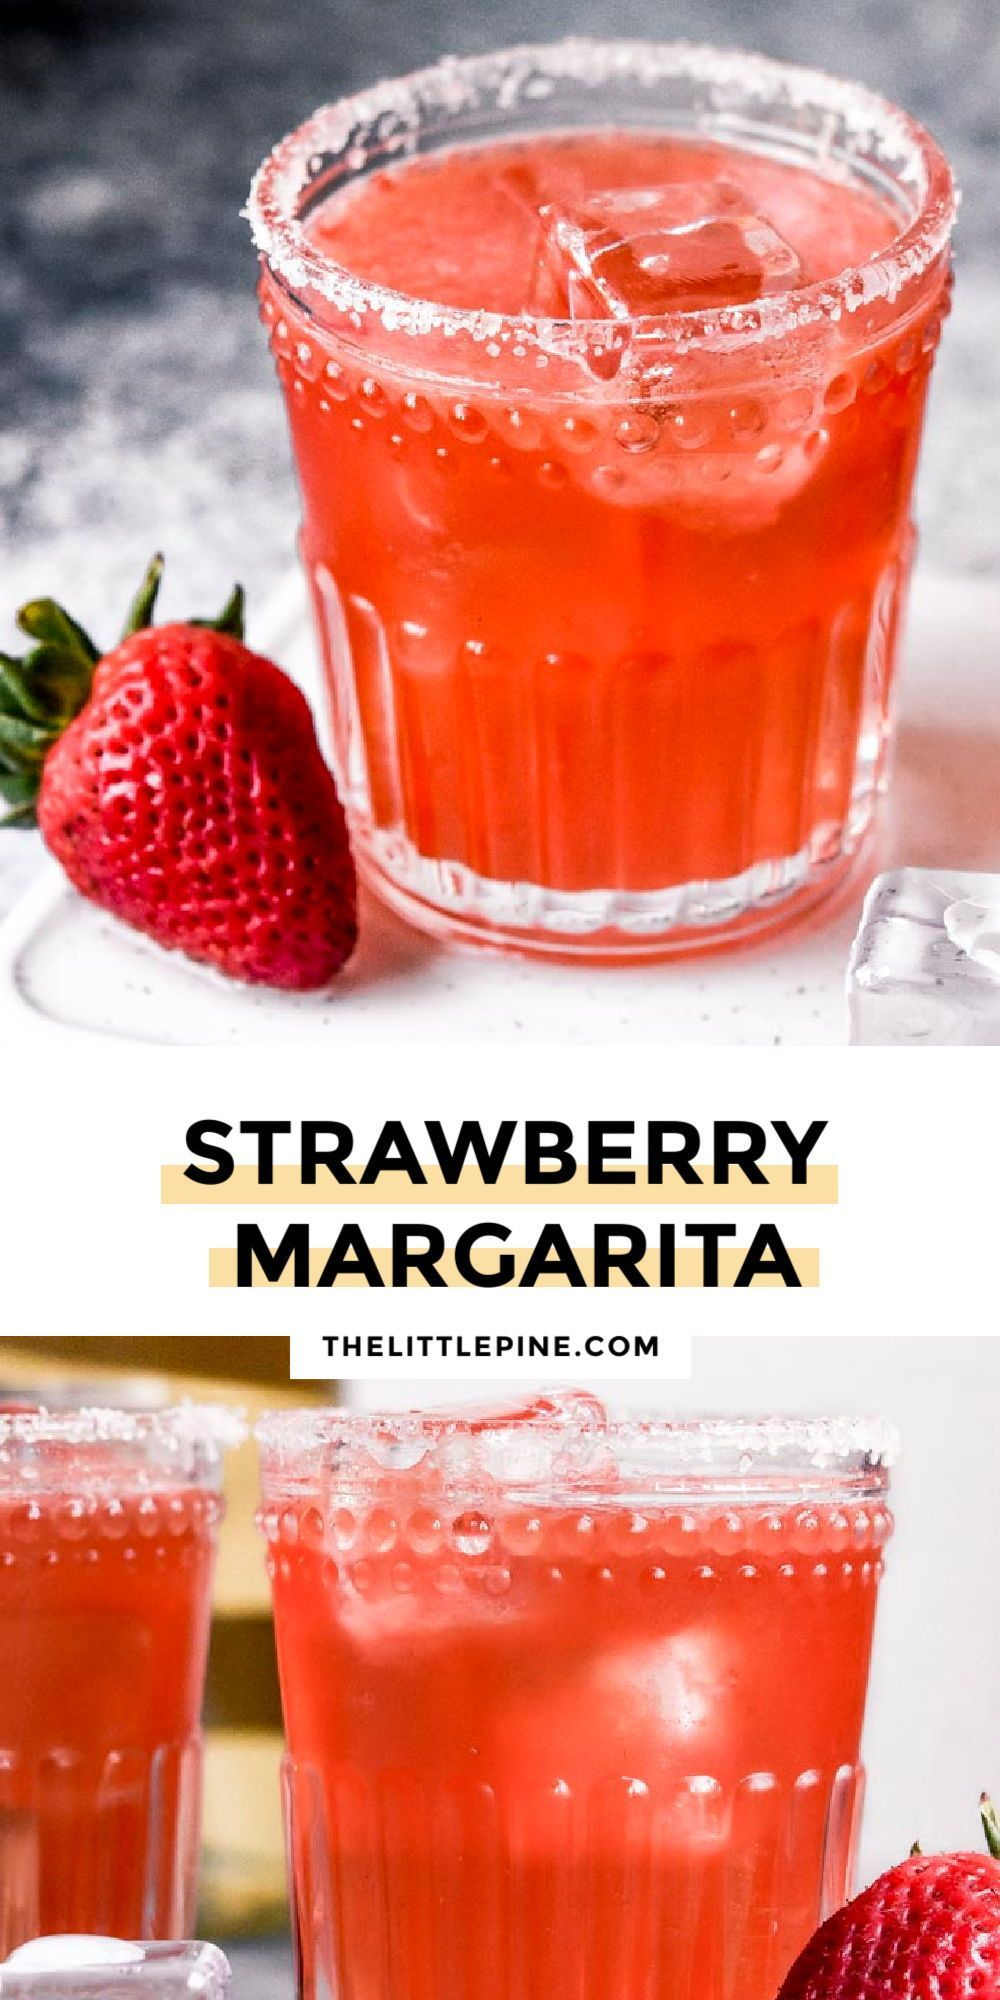 Low Carb Strawberry Margarita 3g Net Carbs Recipe In 2020 Strawberry Margarita Low Carb Cocktails Sugar Free Recipes Desserts